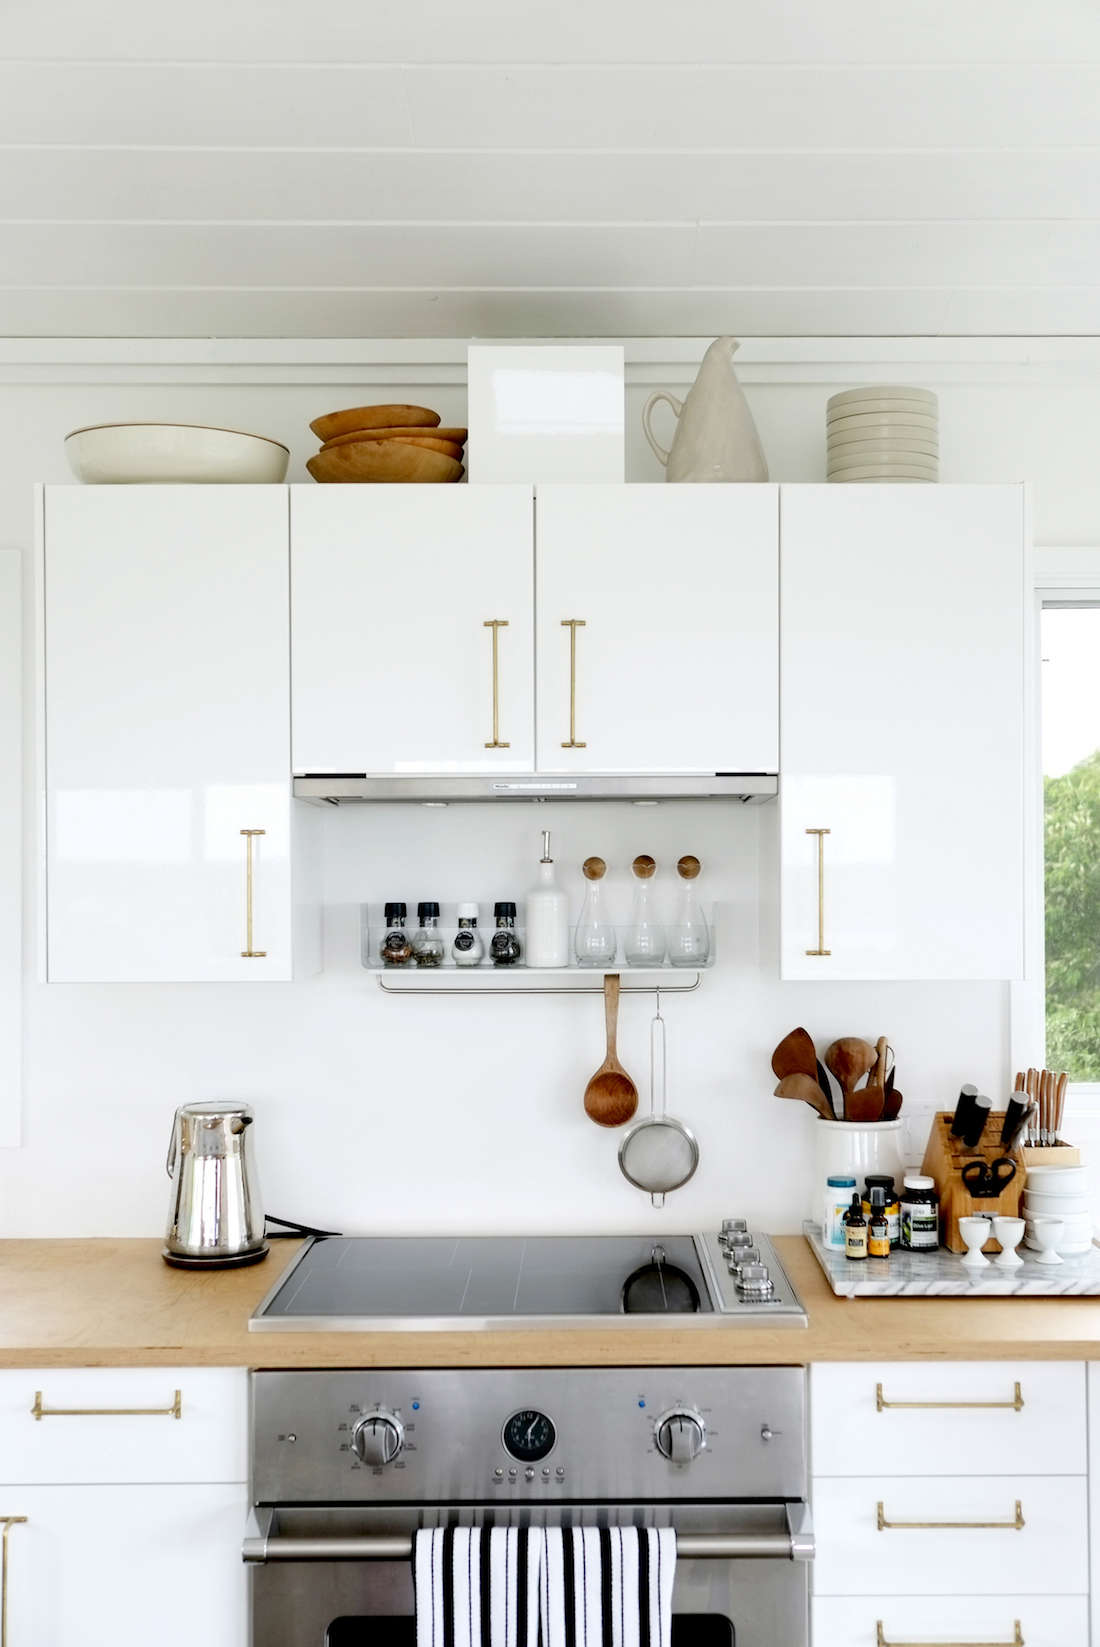 The kitchen cabinets are high-gloss Ringhult fromIkea, and thecabinet pulls are Japanese Futagami Brass Towel Bars. The Miele vent hood is concealedbehind a cabinet, and its exhaust duct is hidden behind a custom cabinet detail on top.